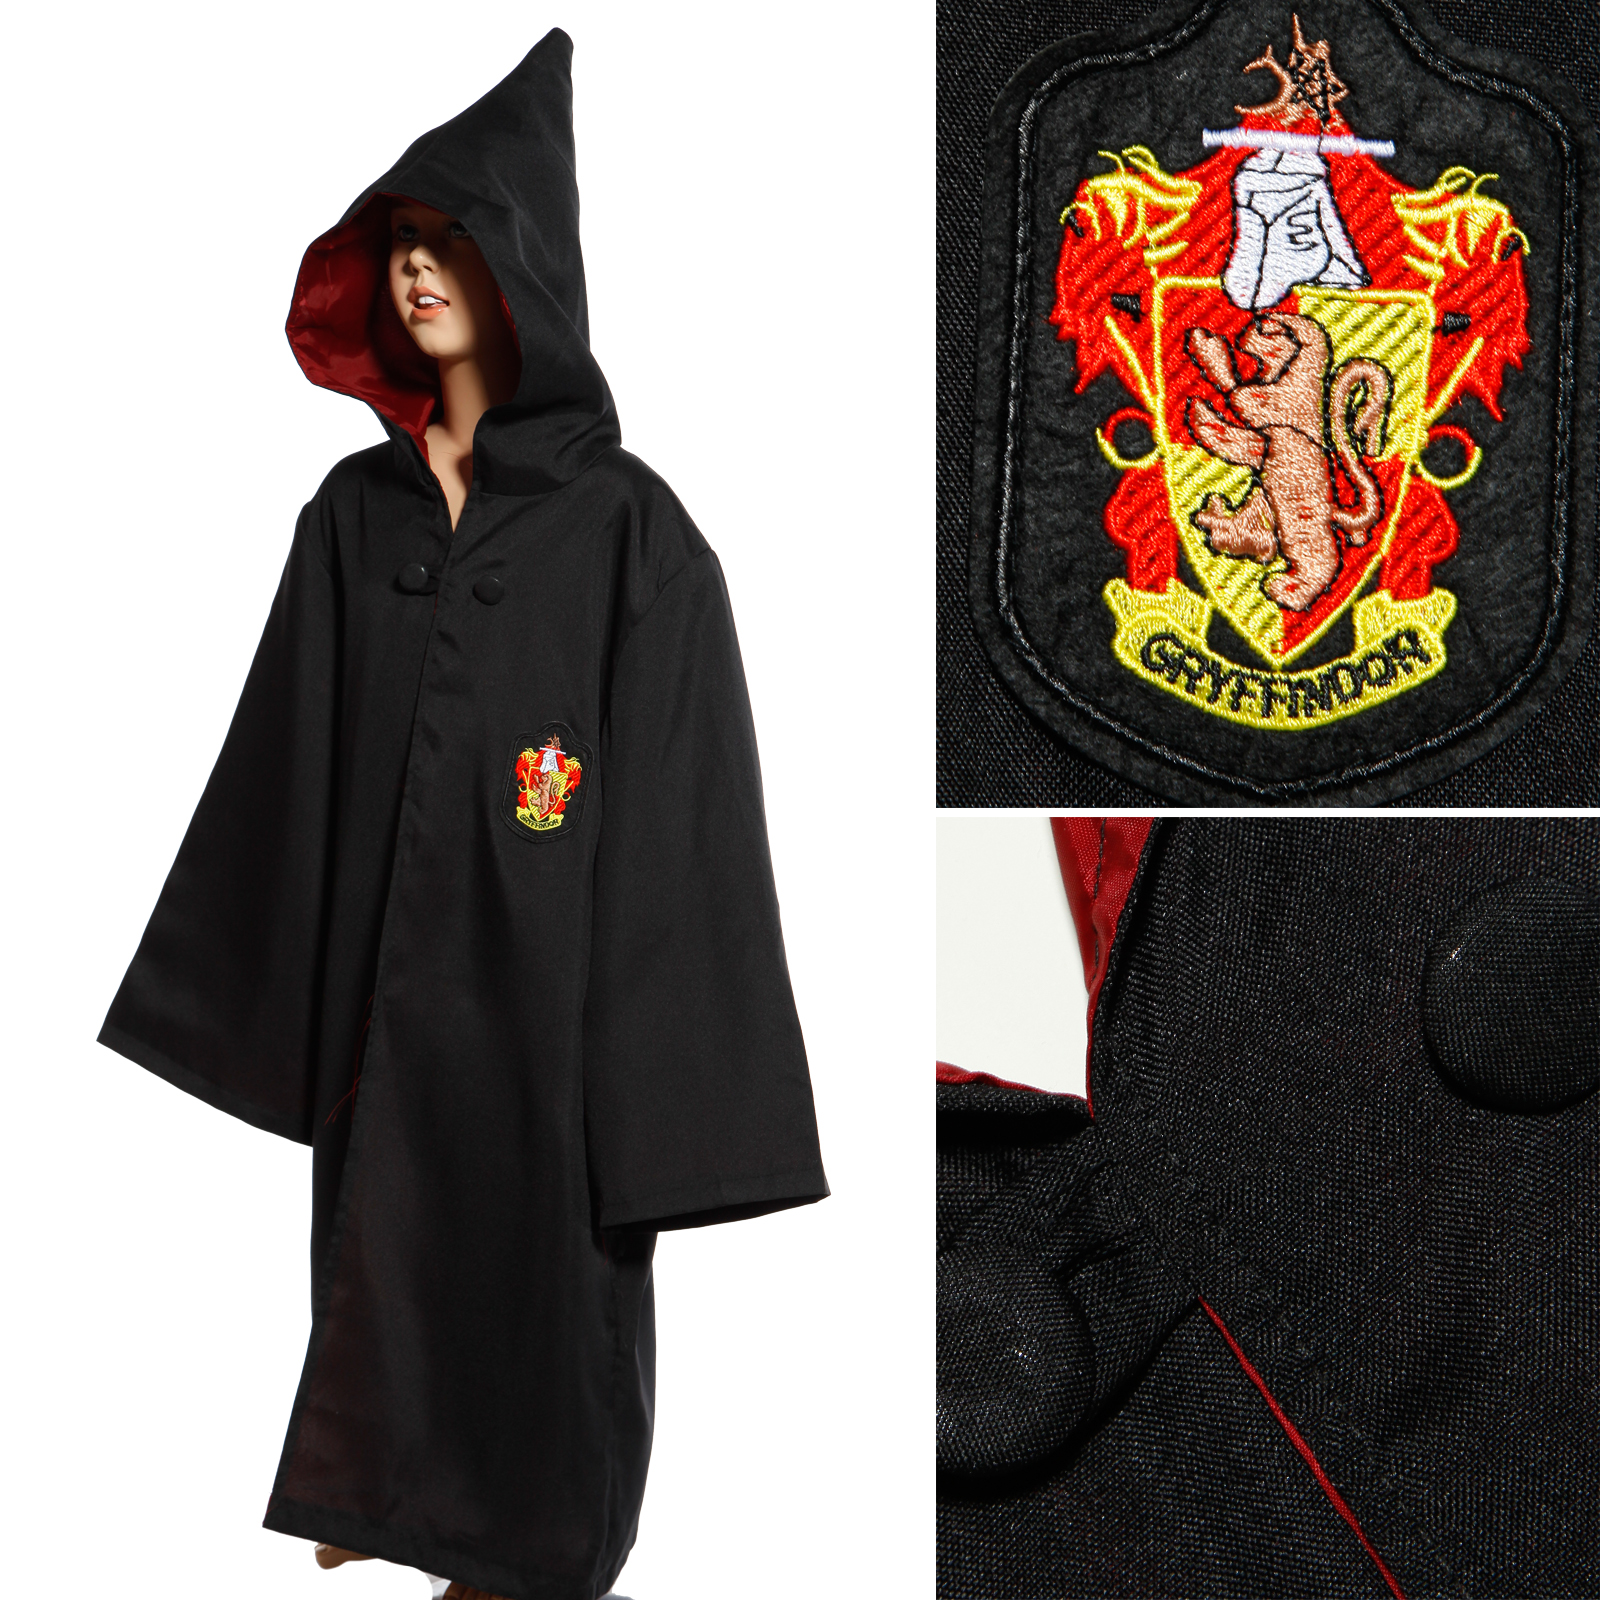 Robe And Wizard Hat: Adult Kids Fairytale Wizard Costume Cloak Robe Cape